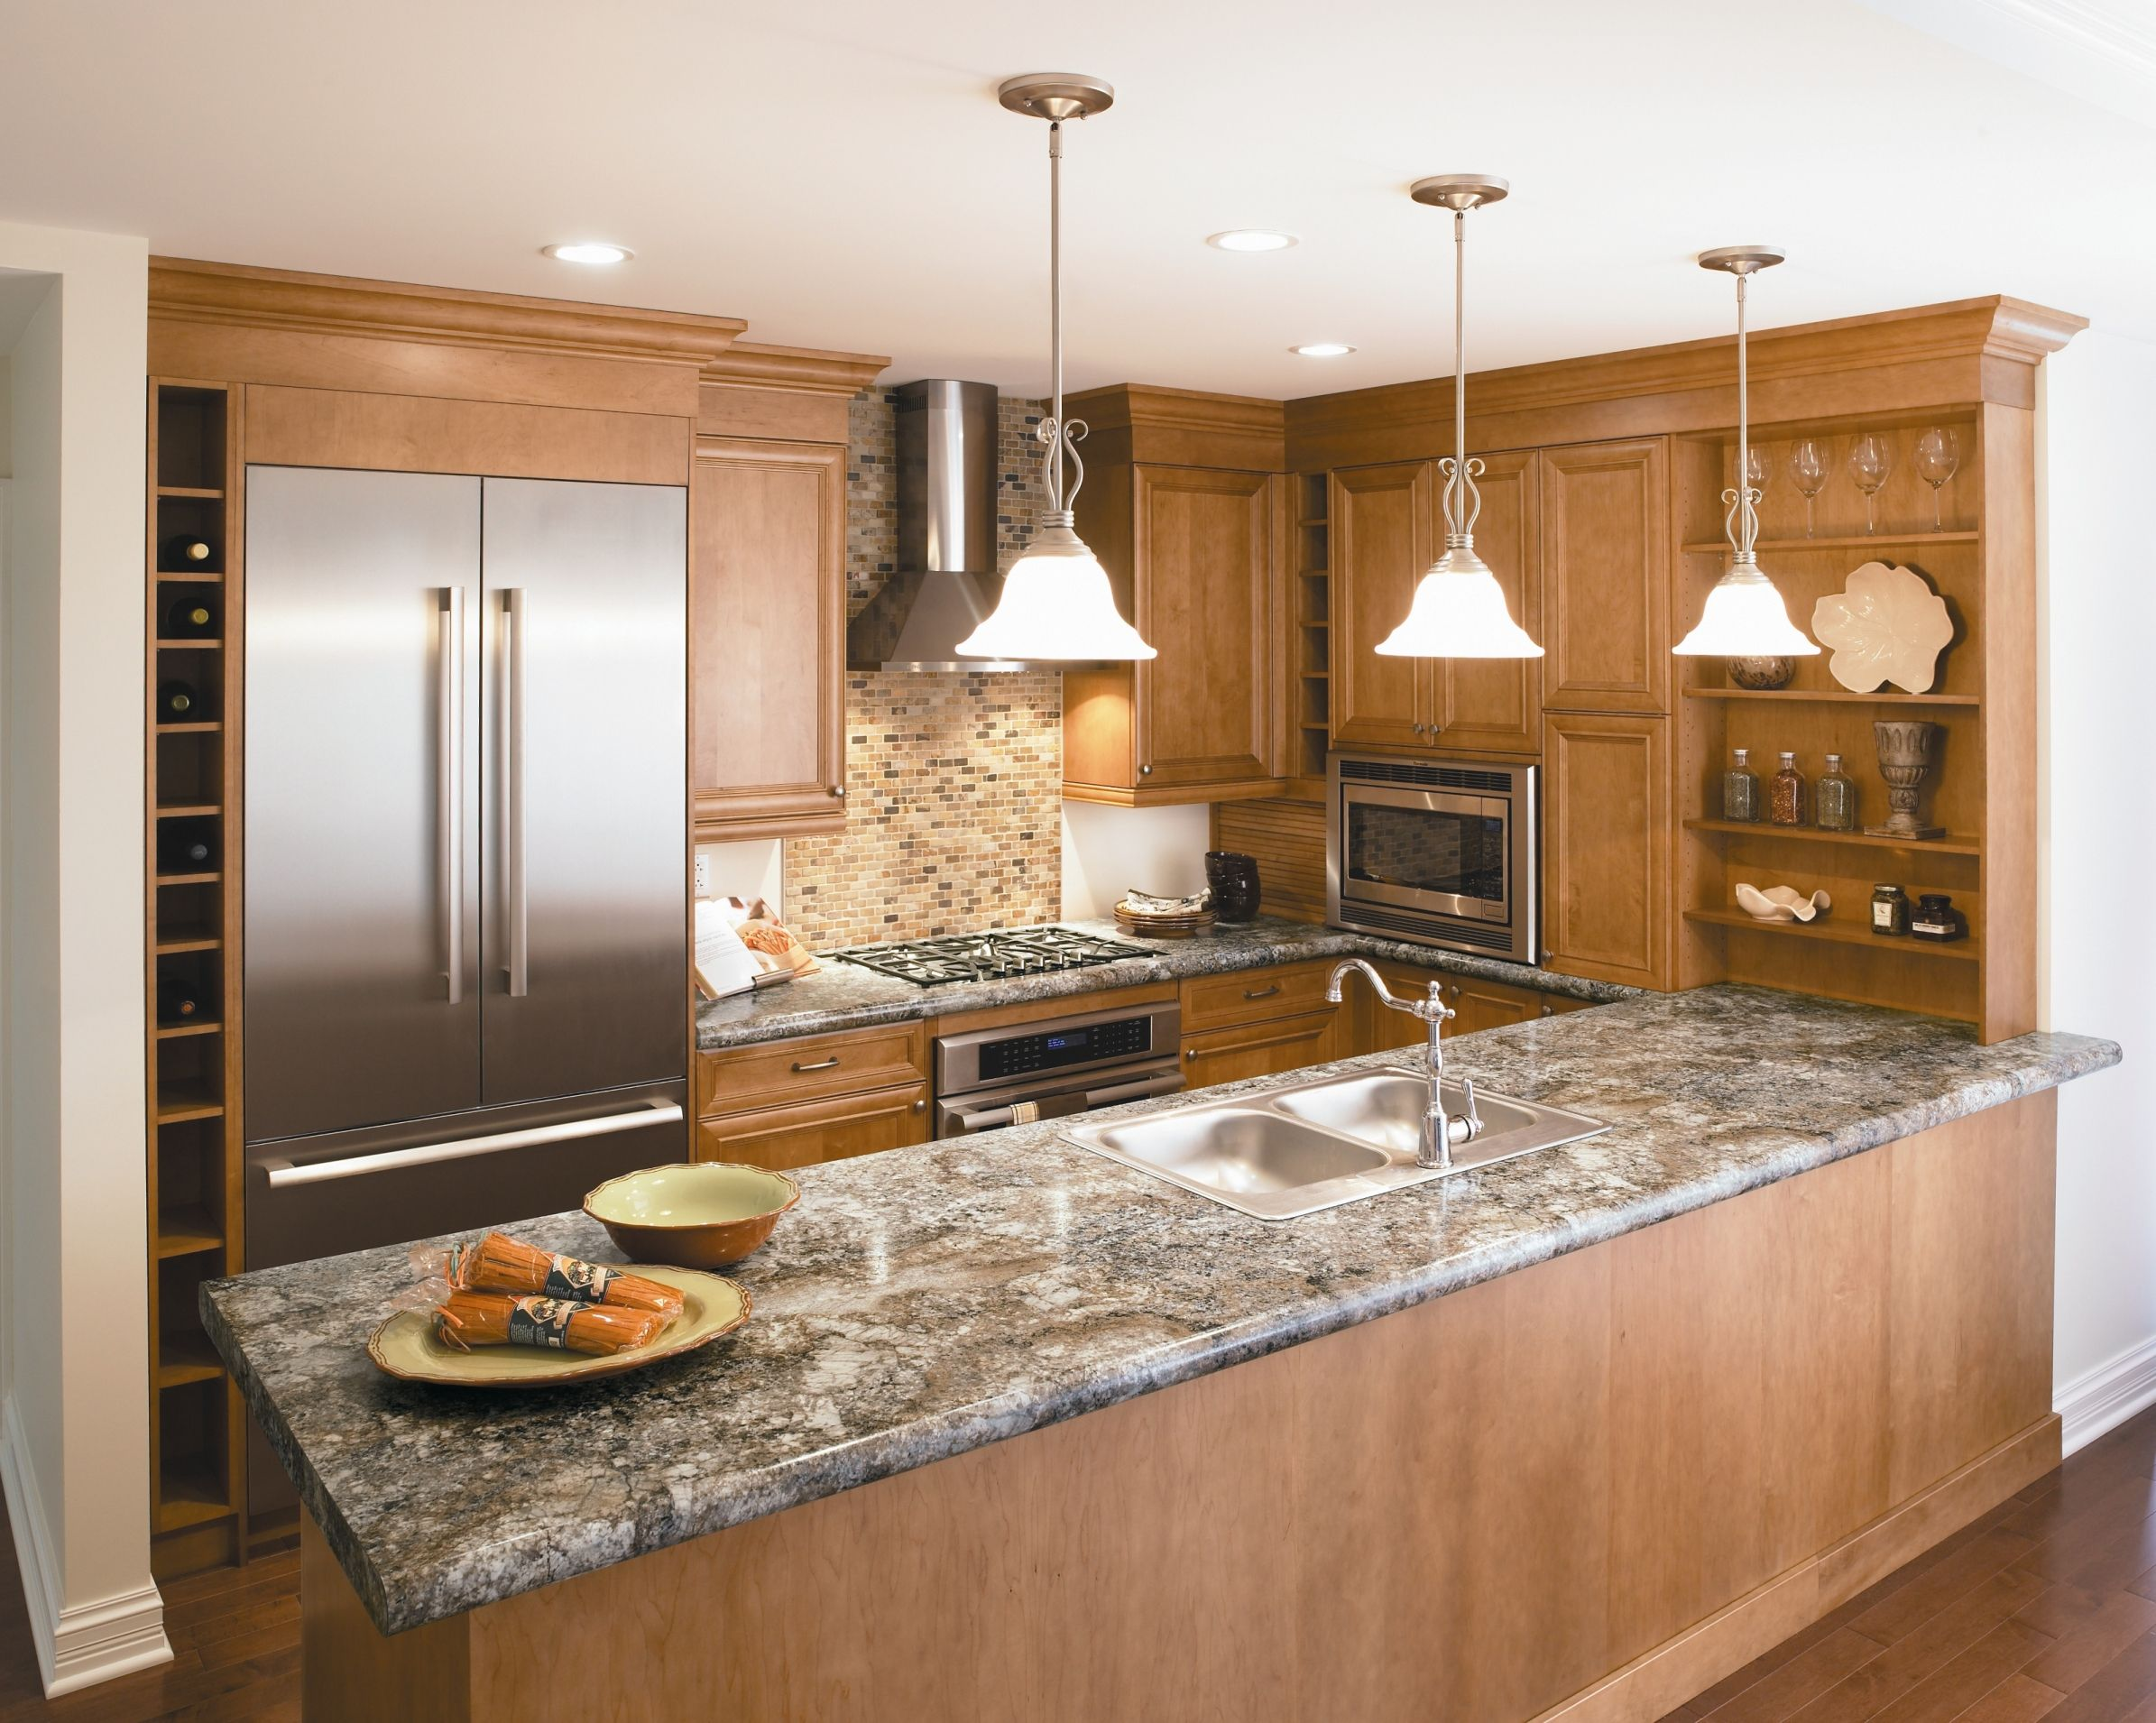 Mesmerizing Marble Countertops At A Budget 3466 Antique